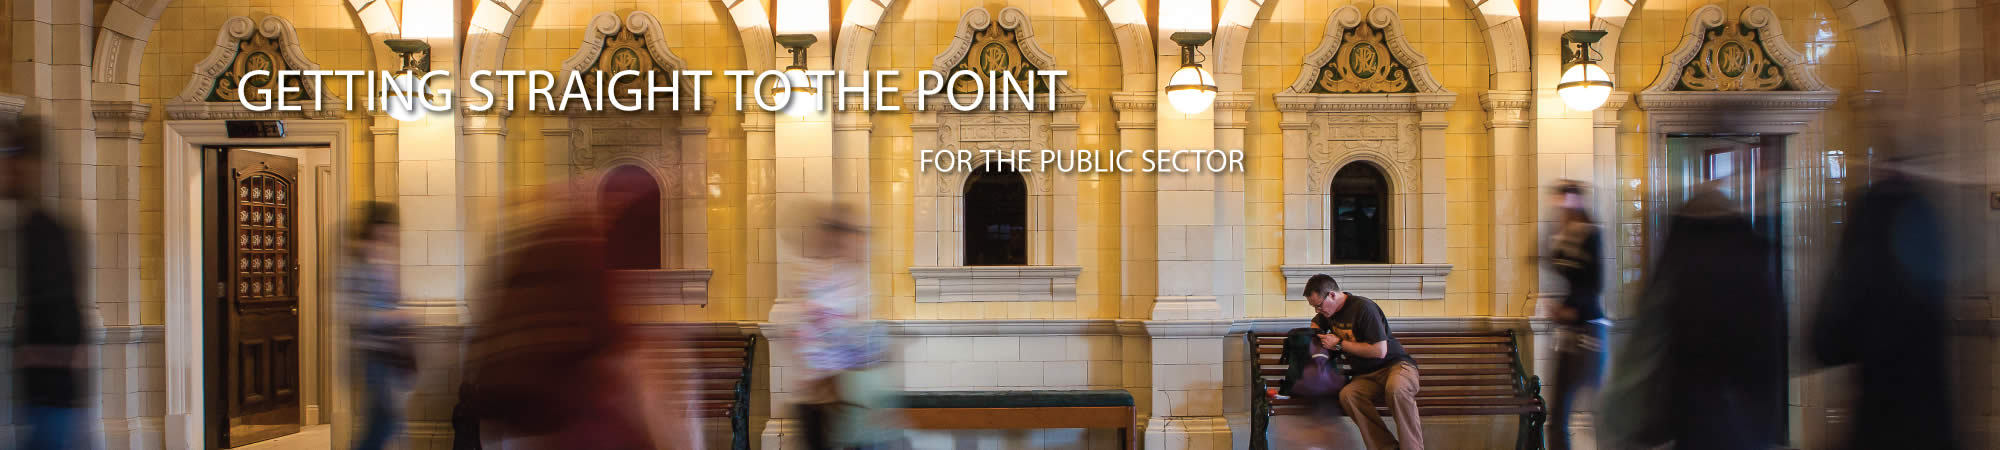 Getting straight to the point for the public sector